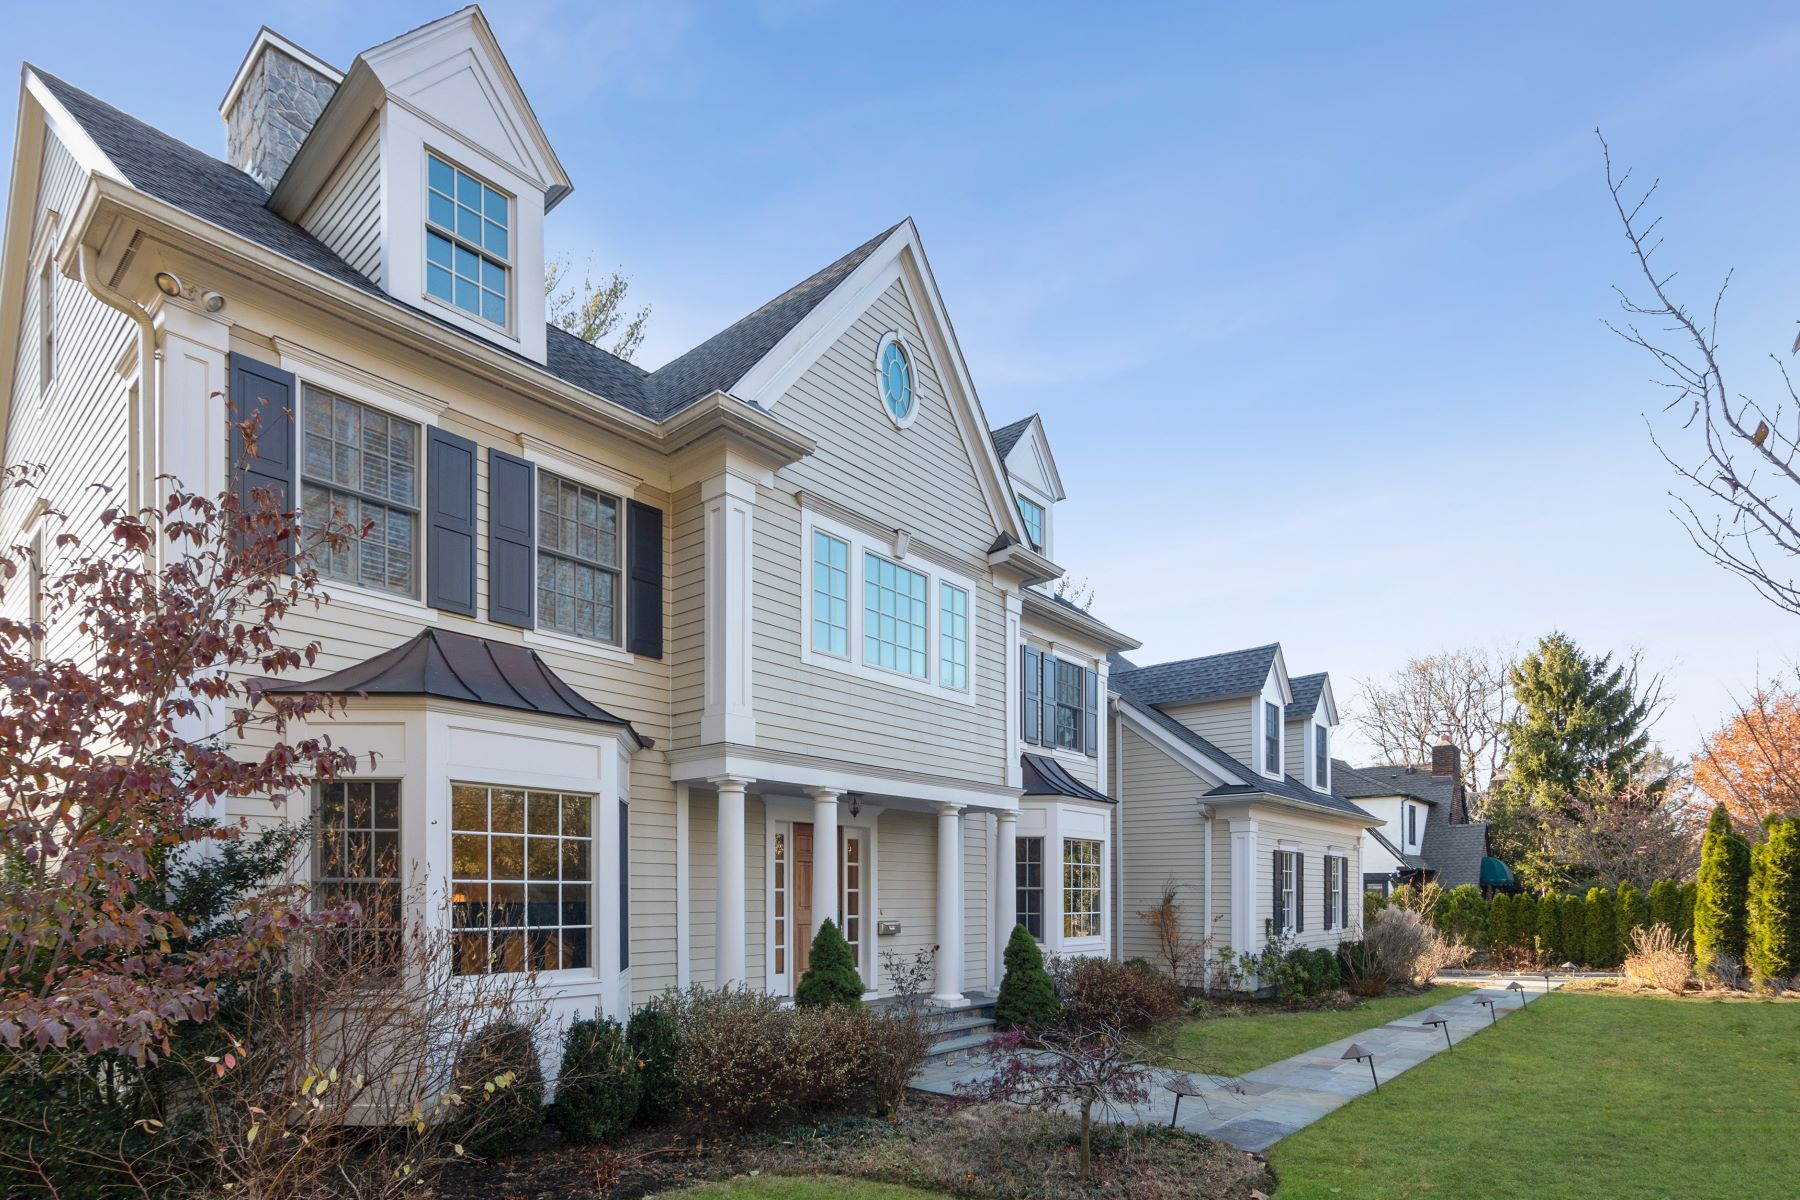 Single Family Homes for Active at Out Of Area Town 18 Drake Road Scarsdale, New York 10583 United States